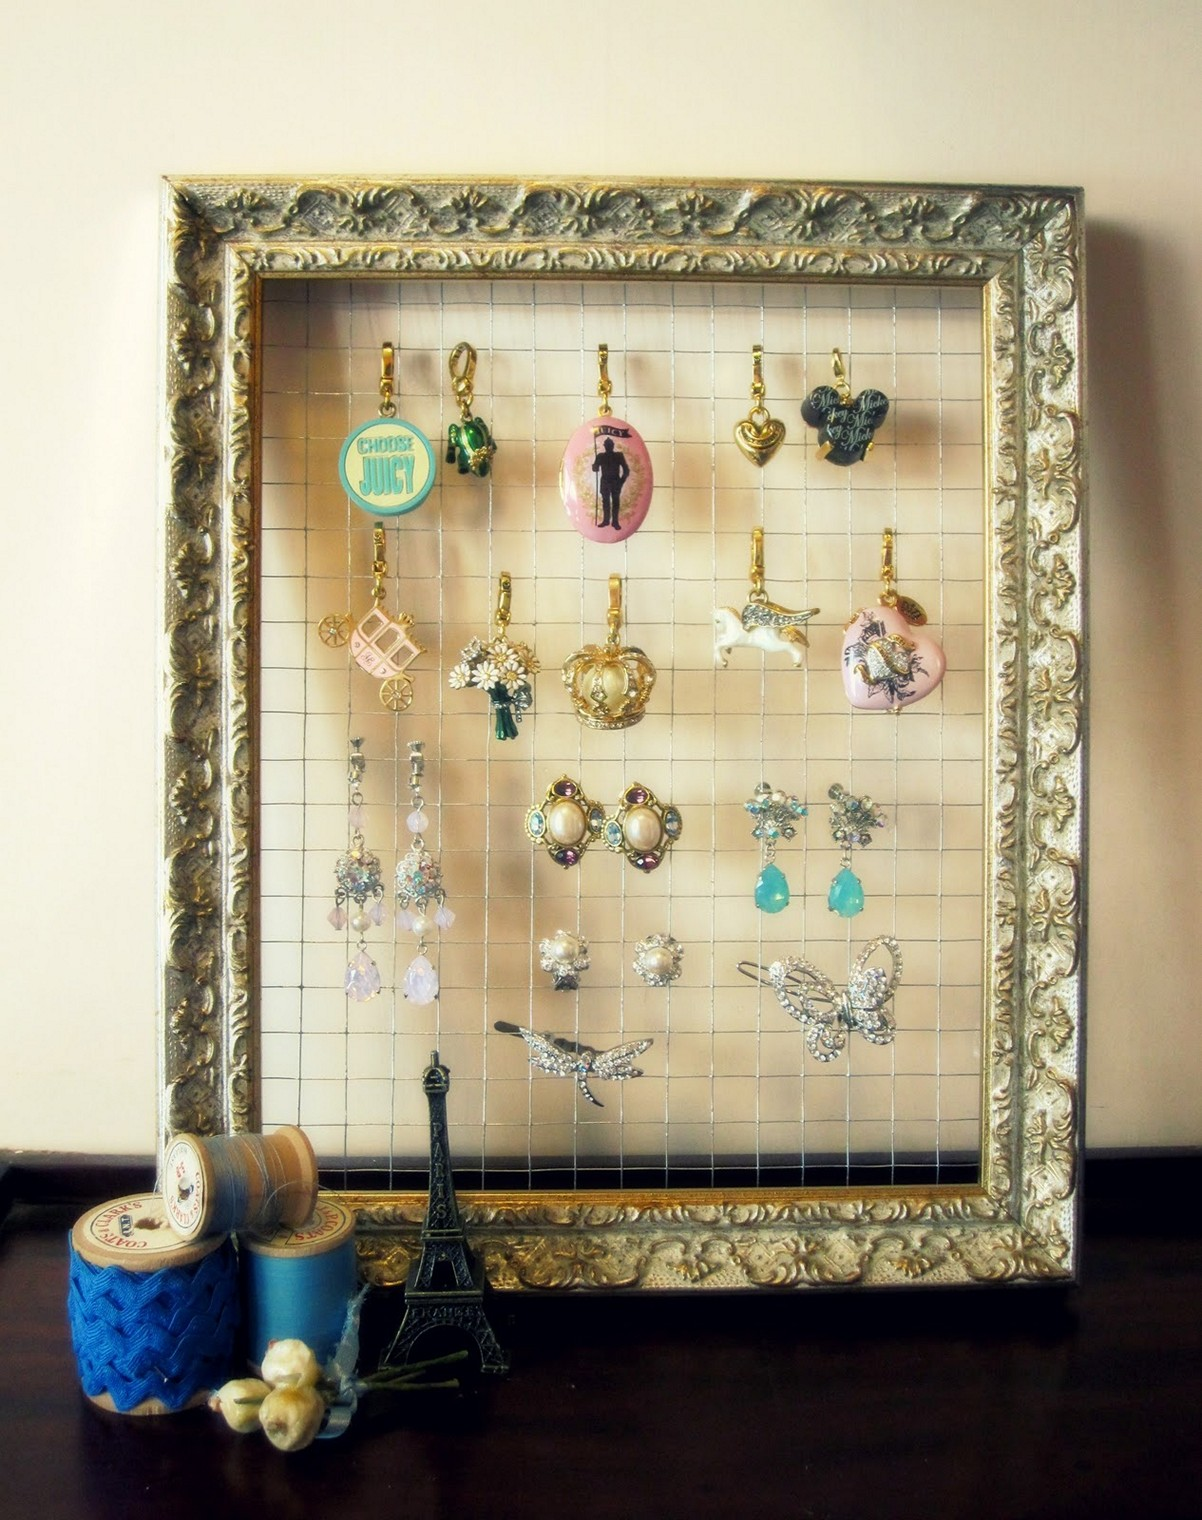 Interesting idea for a DIY jewelry holder using a picture frame and thin metal wire.